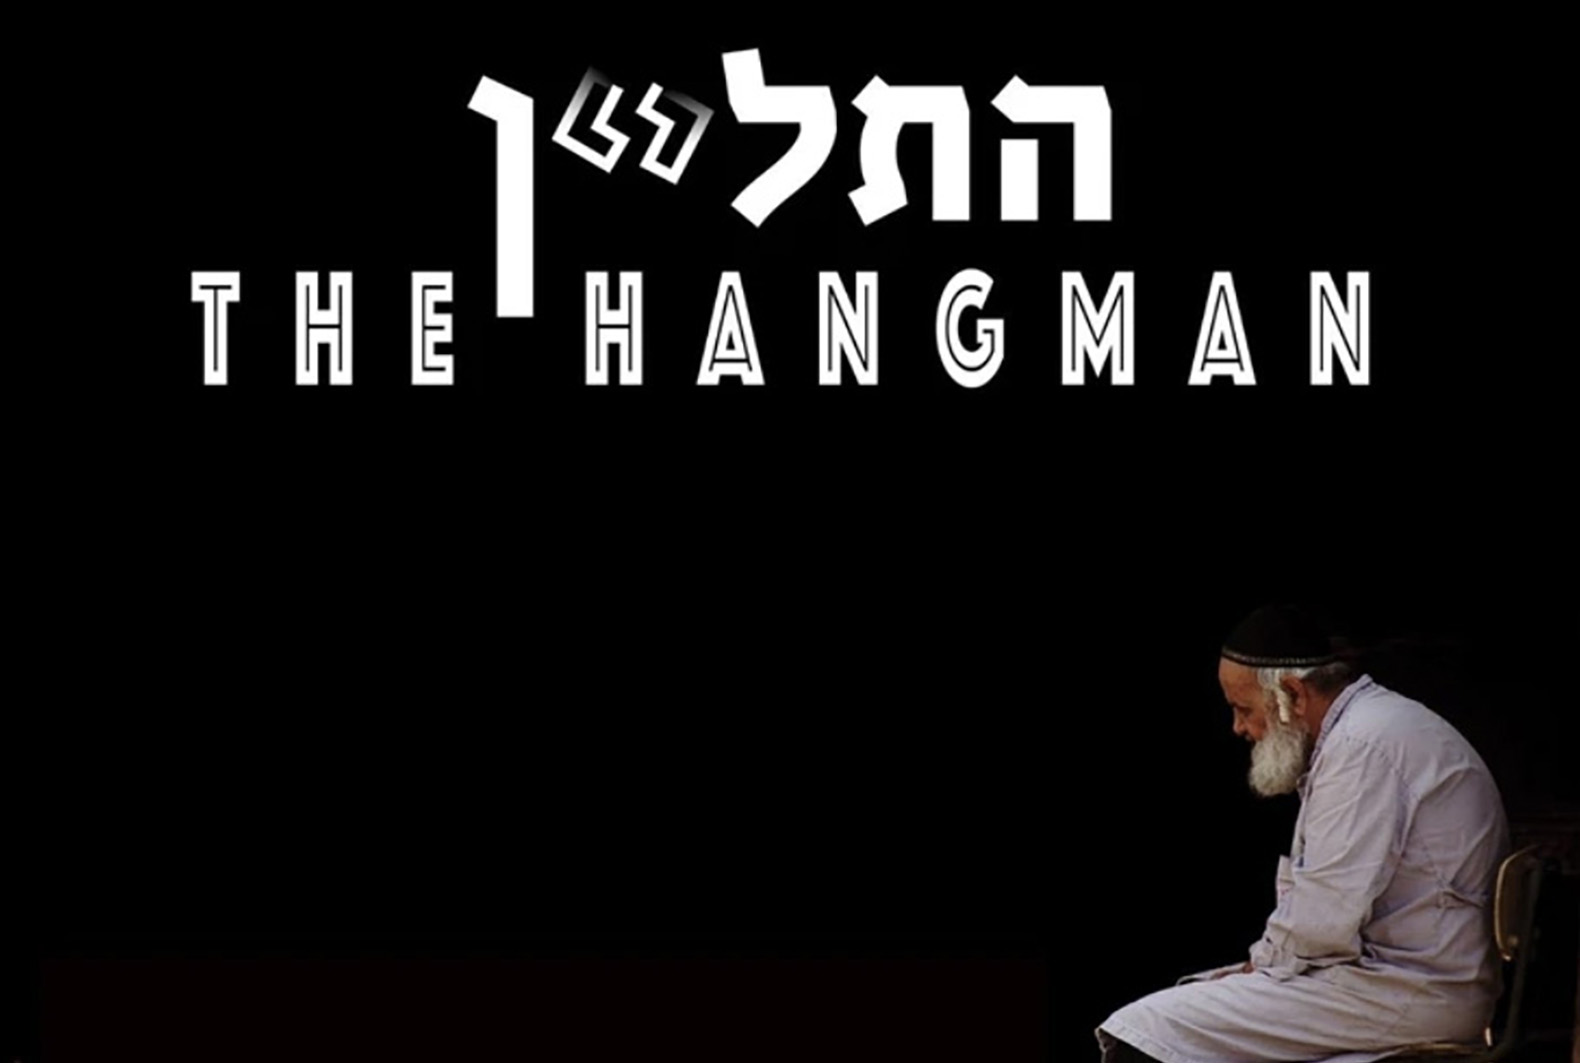 """Poster showing """"The Hangman"""" title in English and Hebrew, with an older man in kippah (skullcap) sitting slumped in chair"""